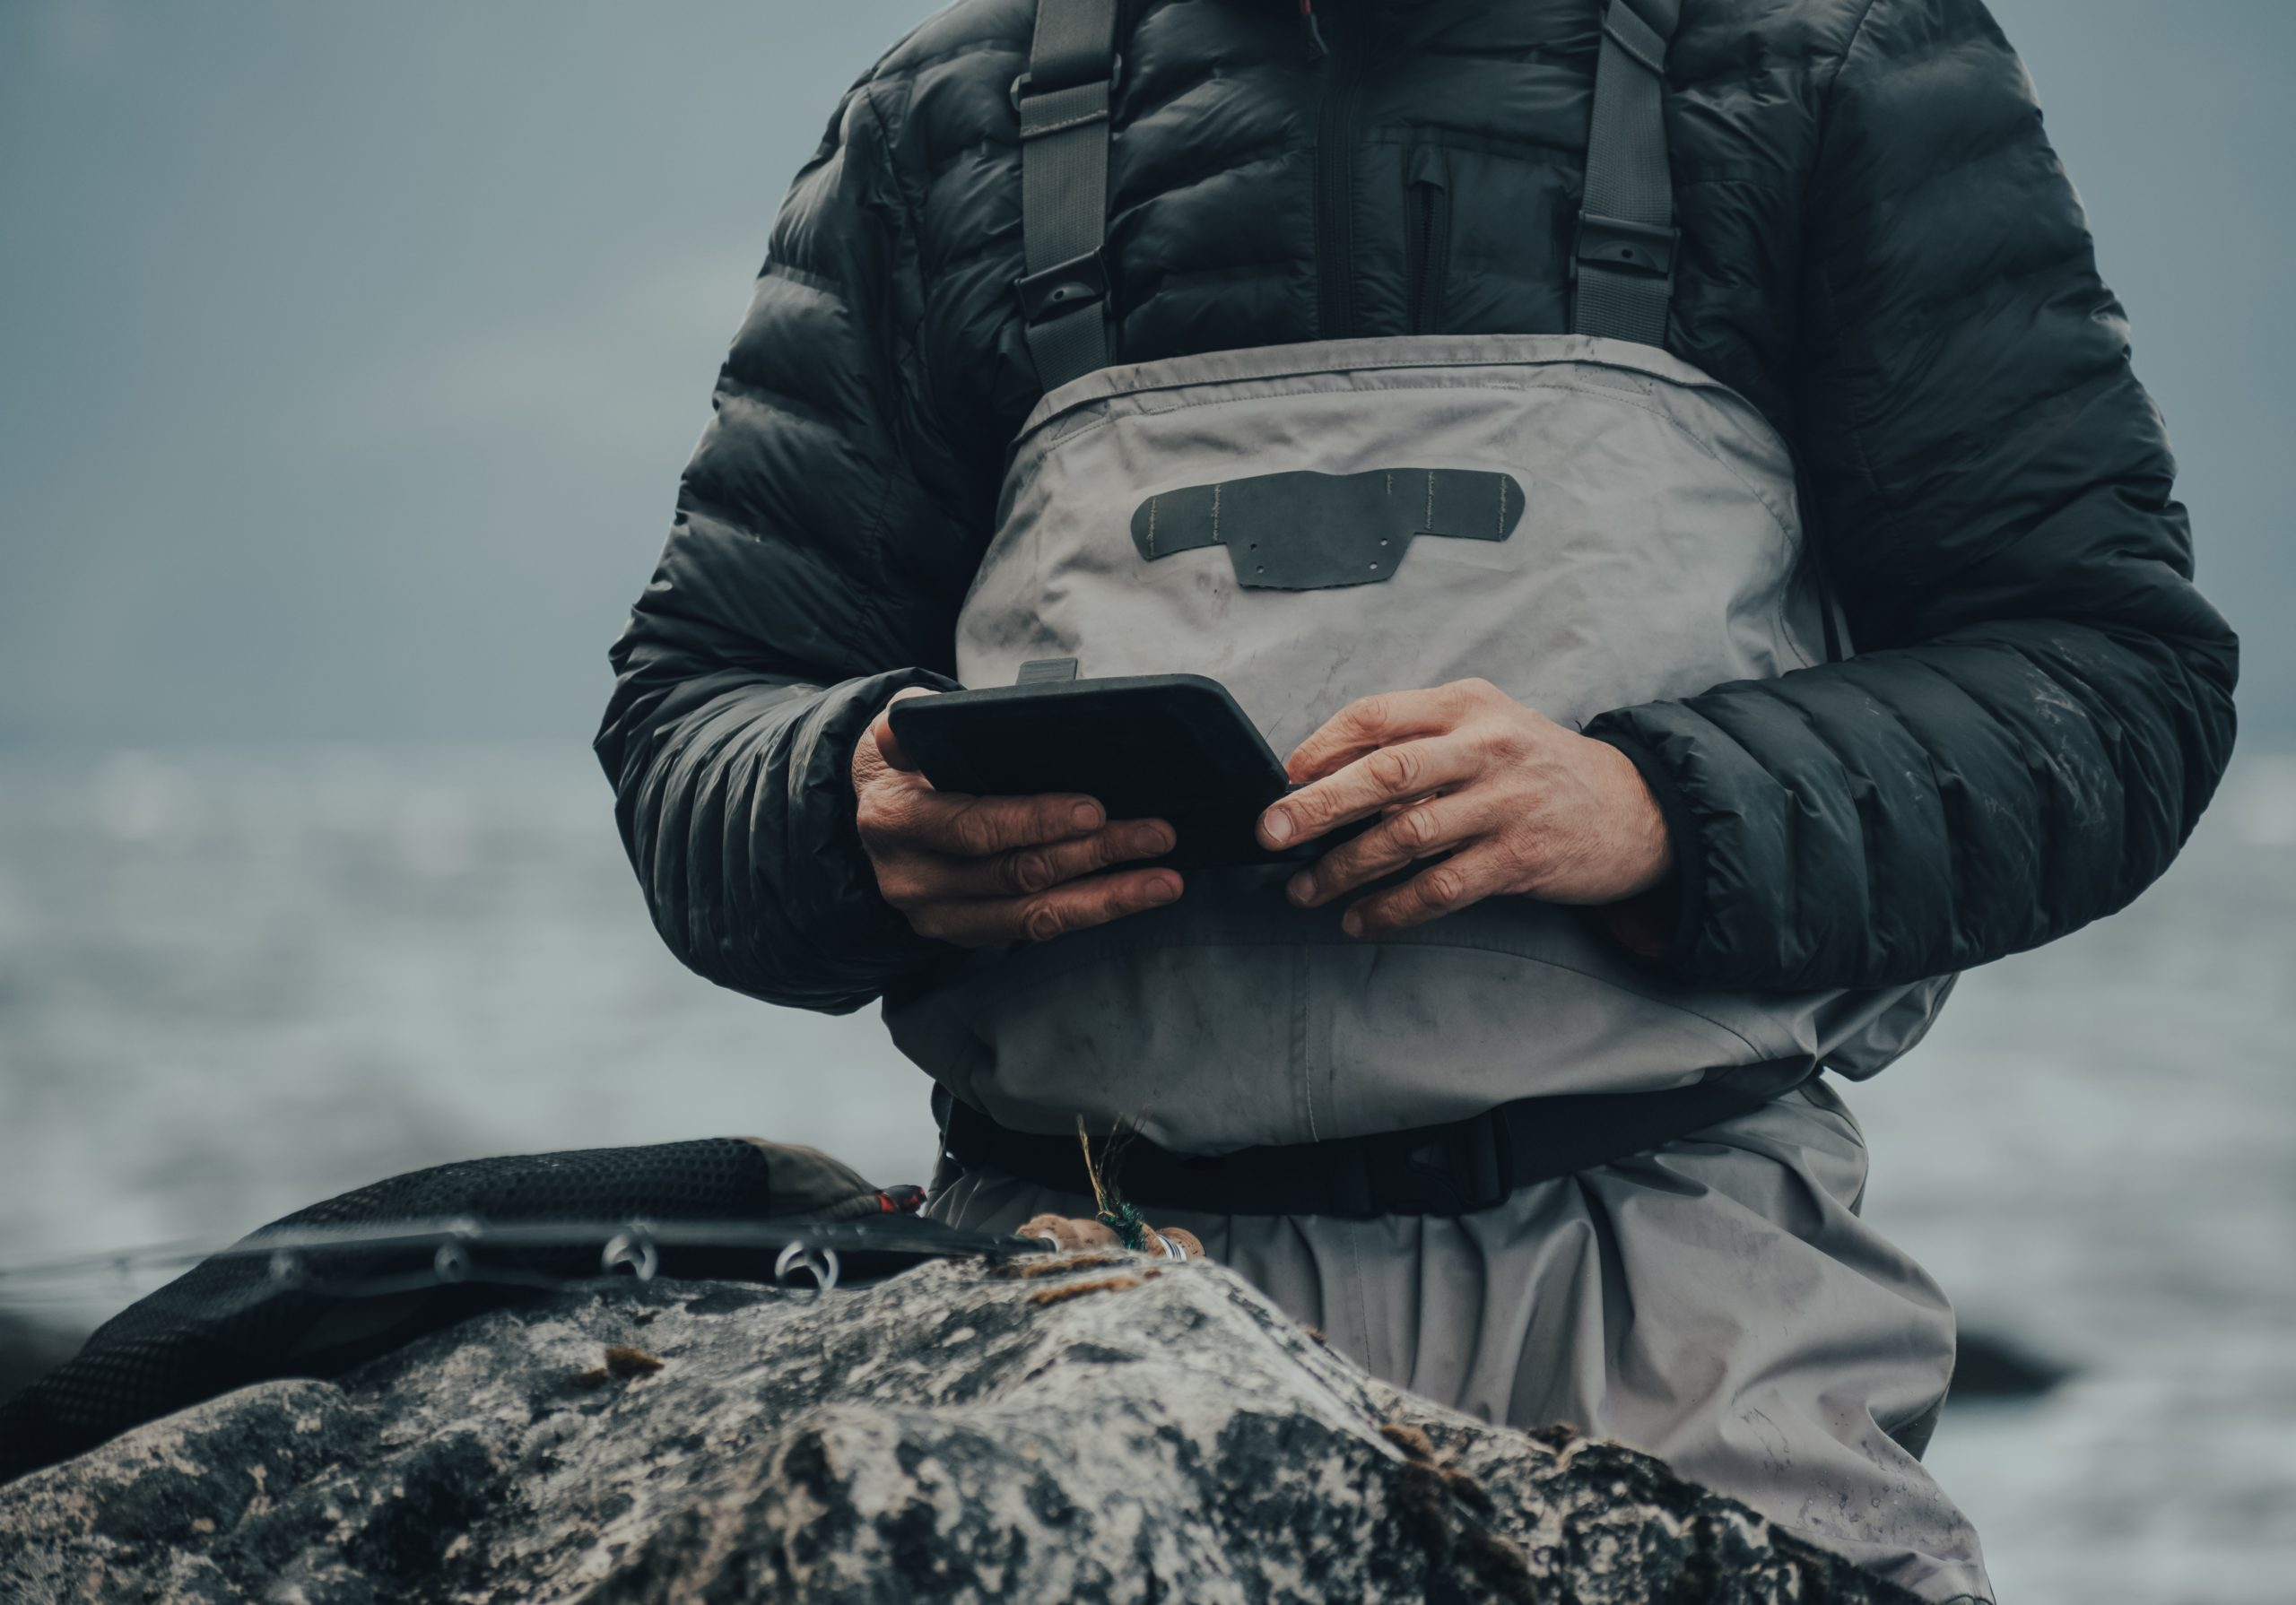 Man holding a gadget while fishing.